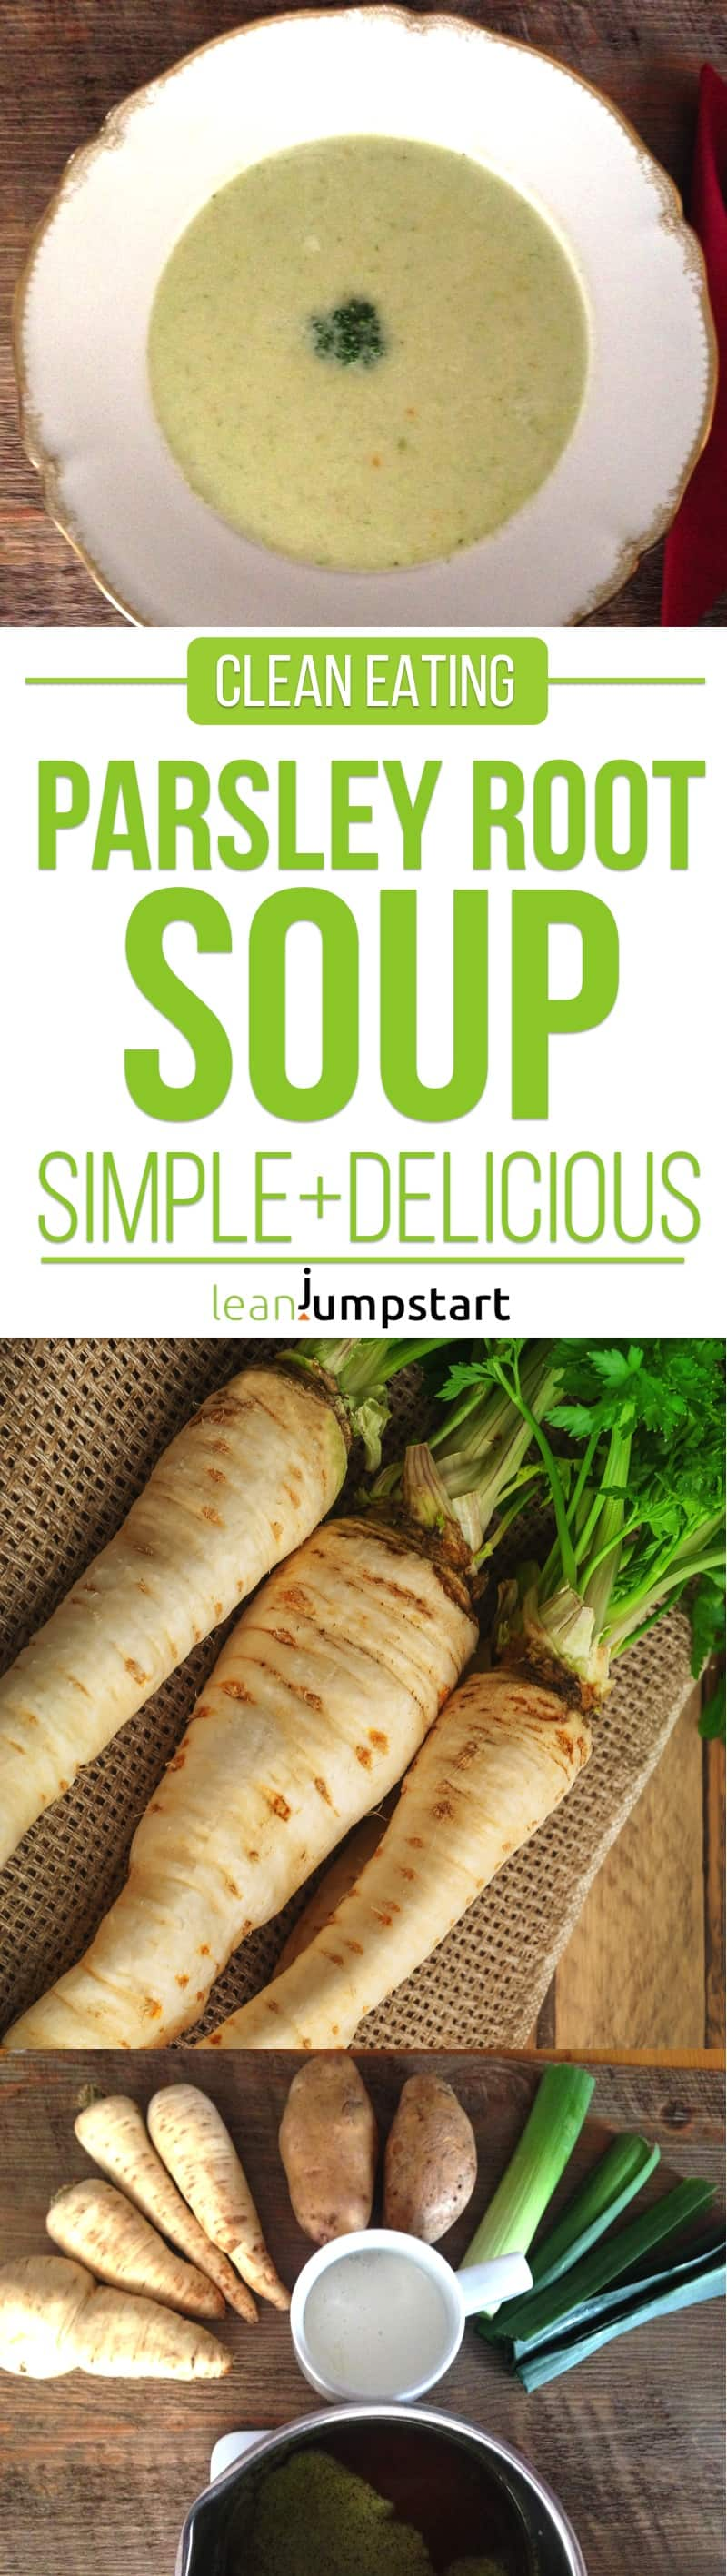 parsley root soup: a quick and easy clean eating soup recipe for weight management